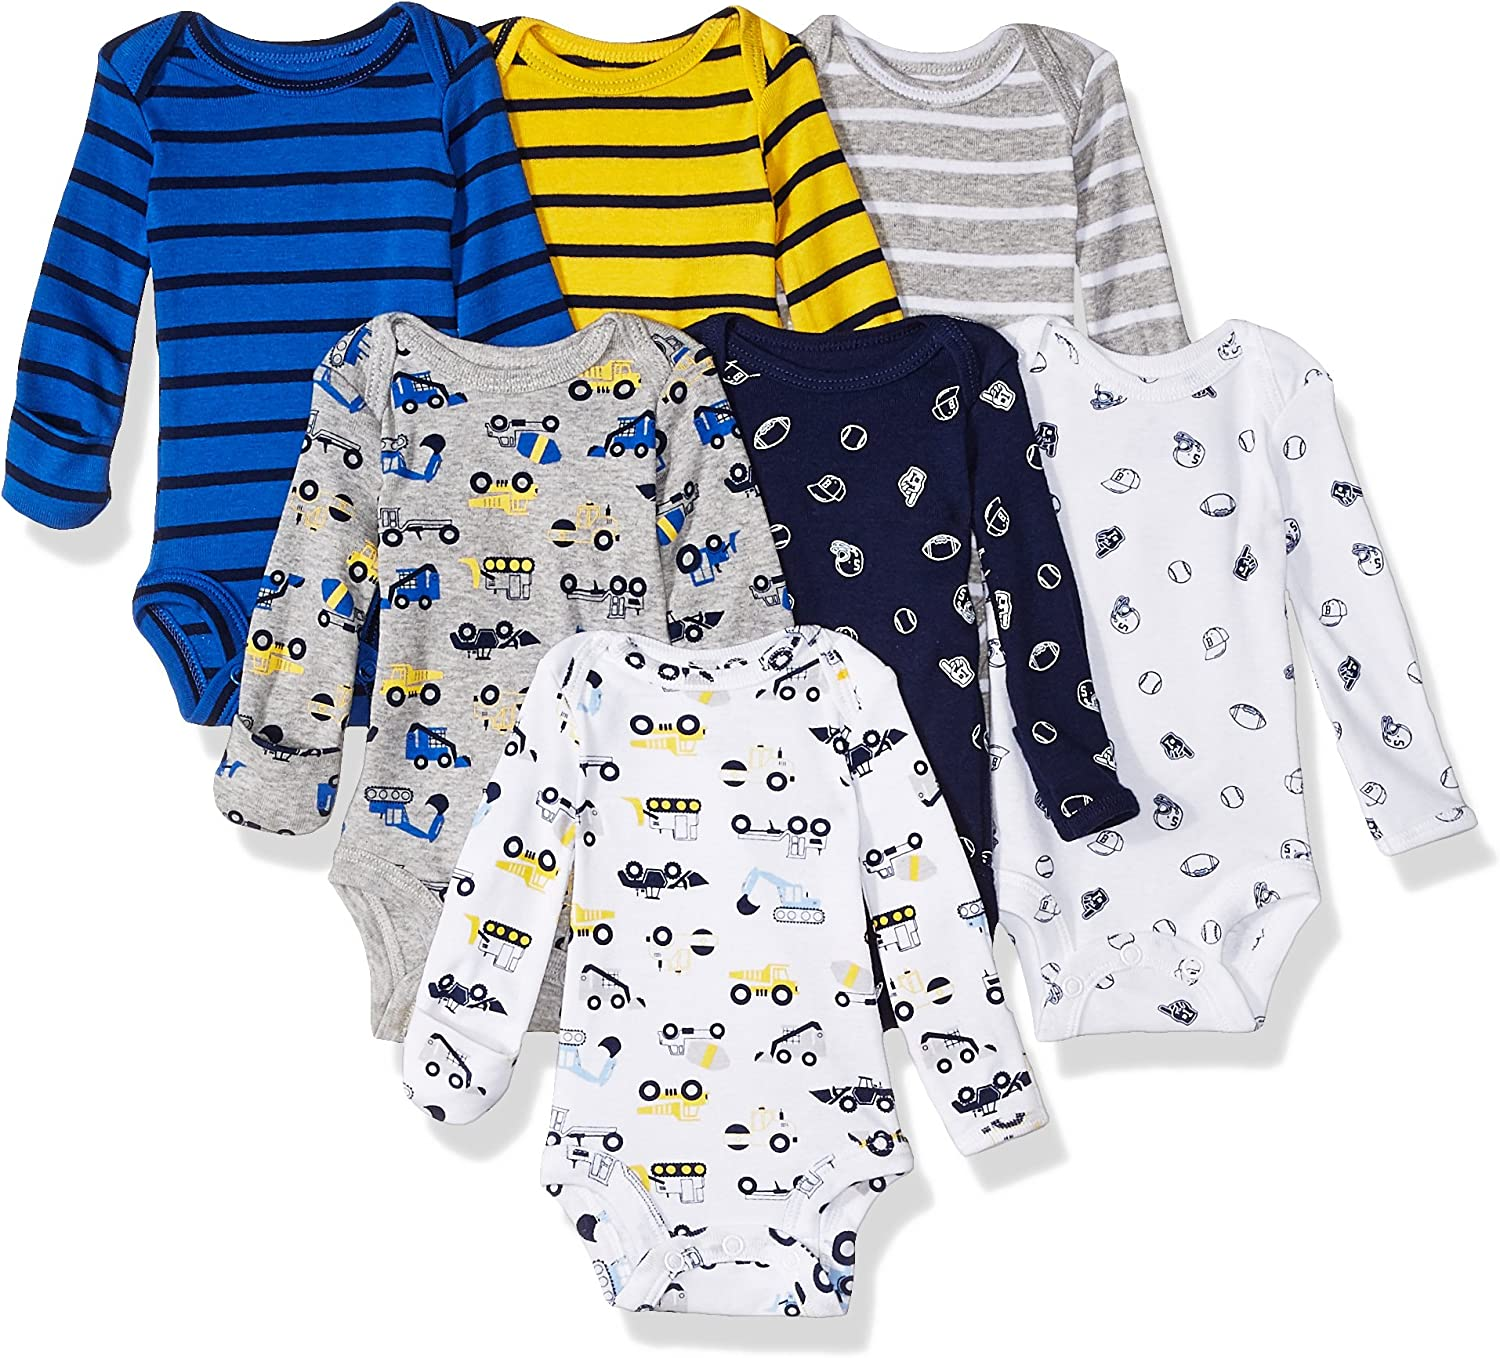 Carters Baby-Girls 7-Pack Long-Sleeve Bodysuits Bodysuit